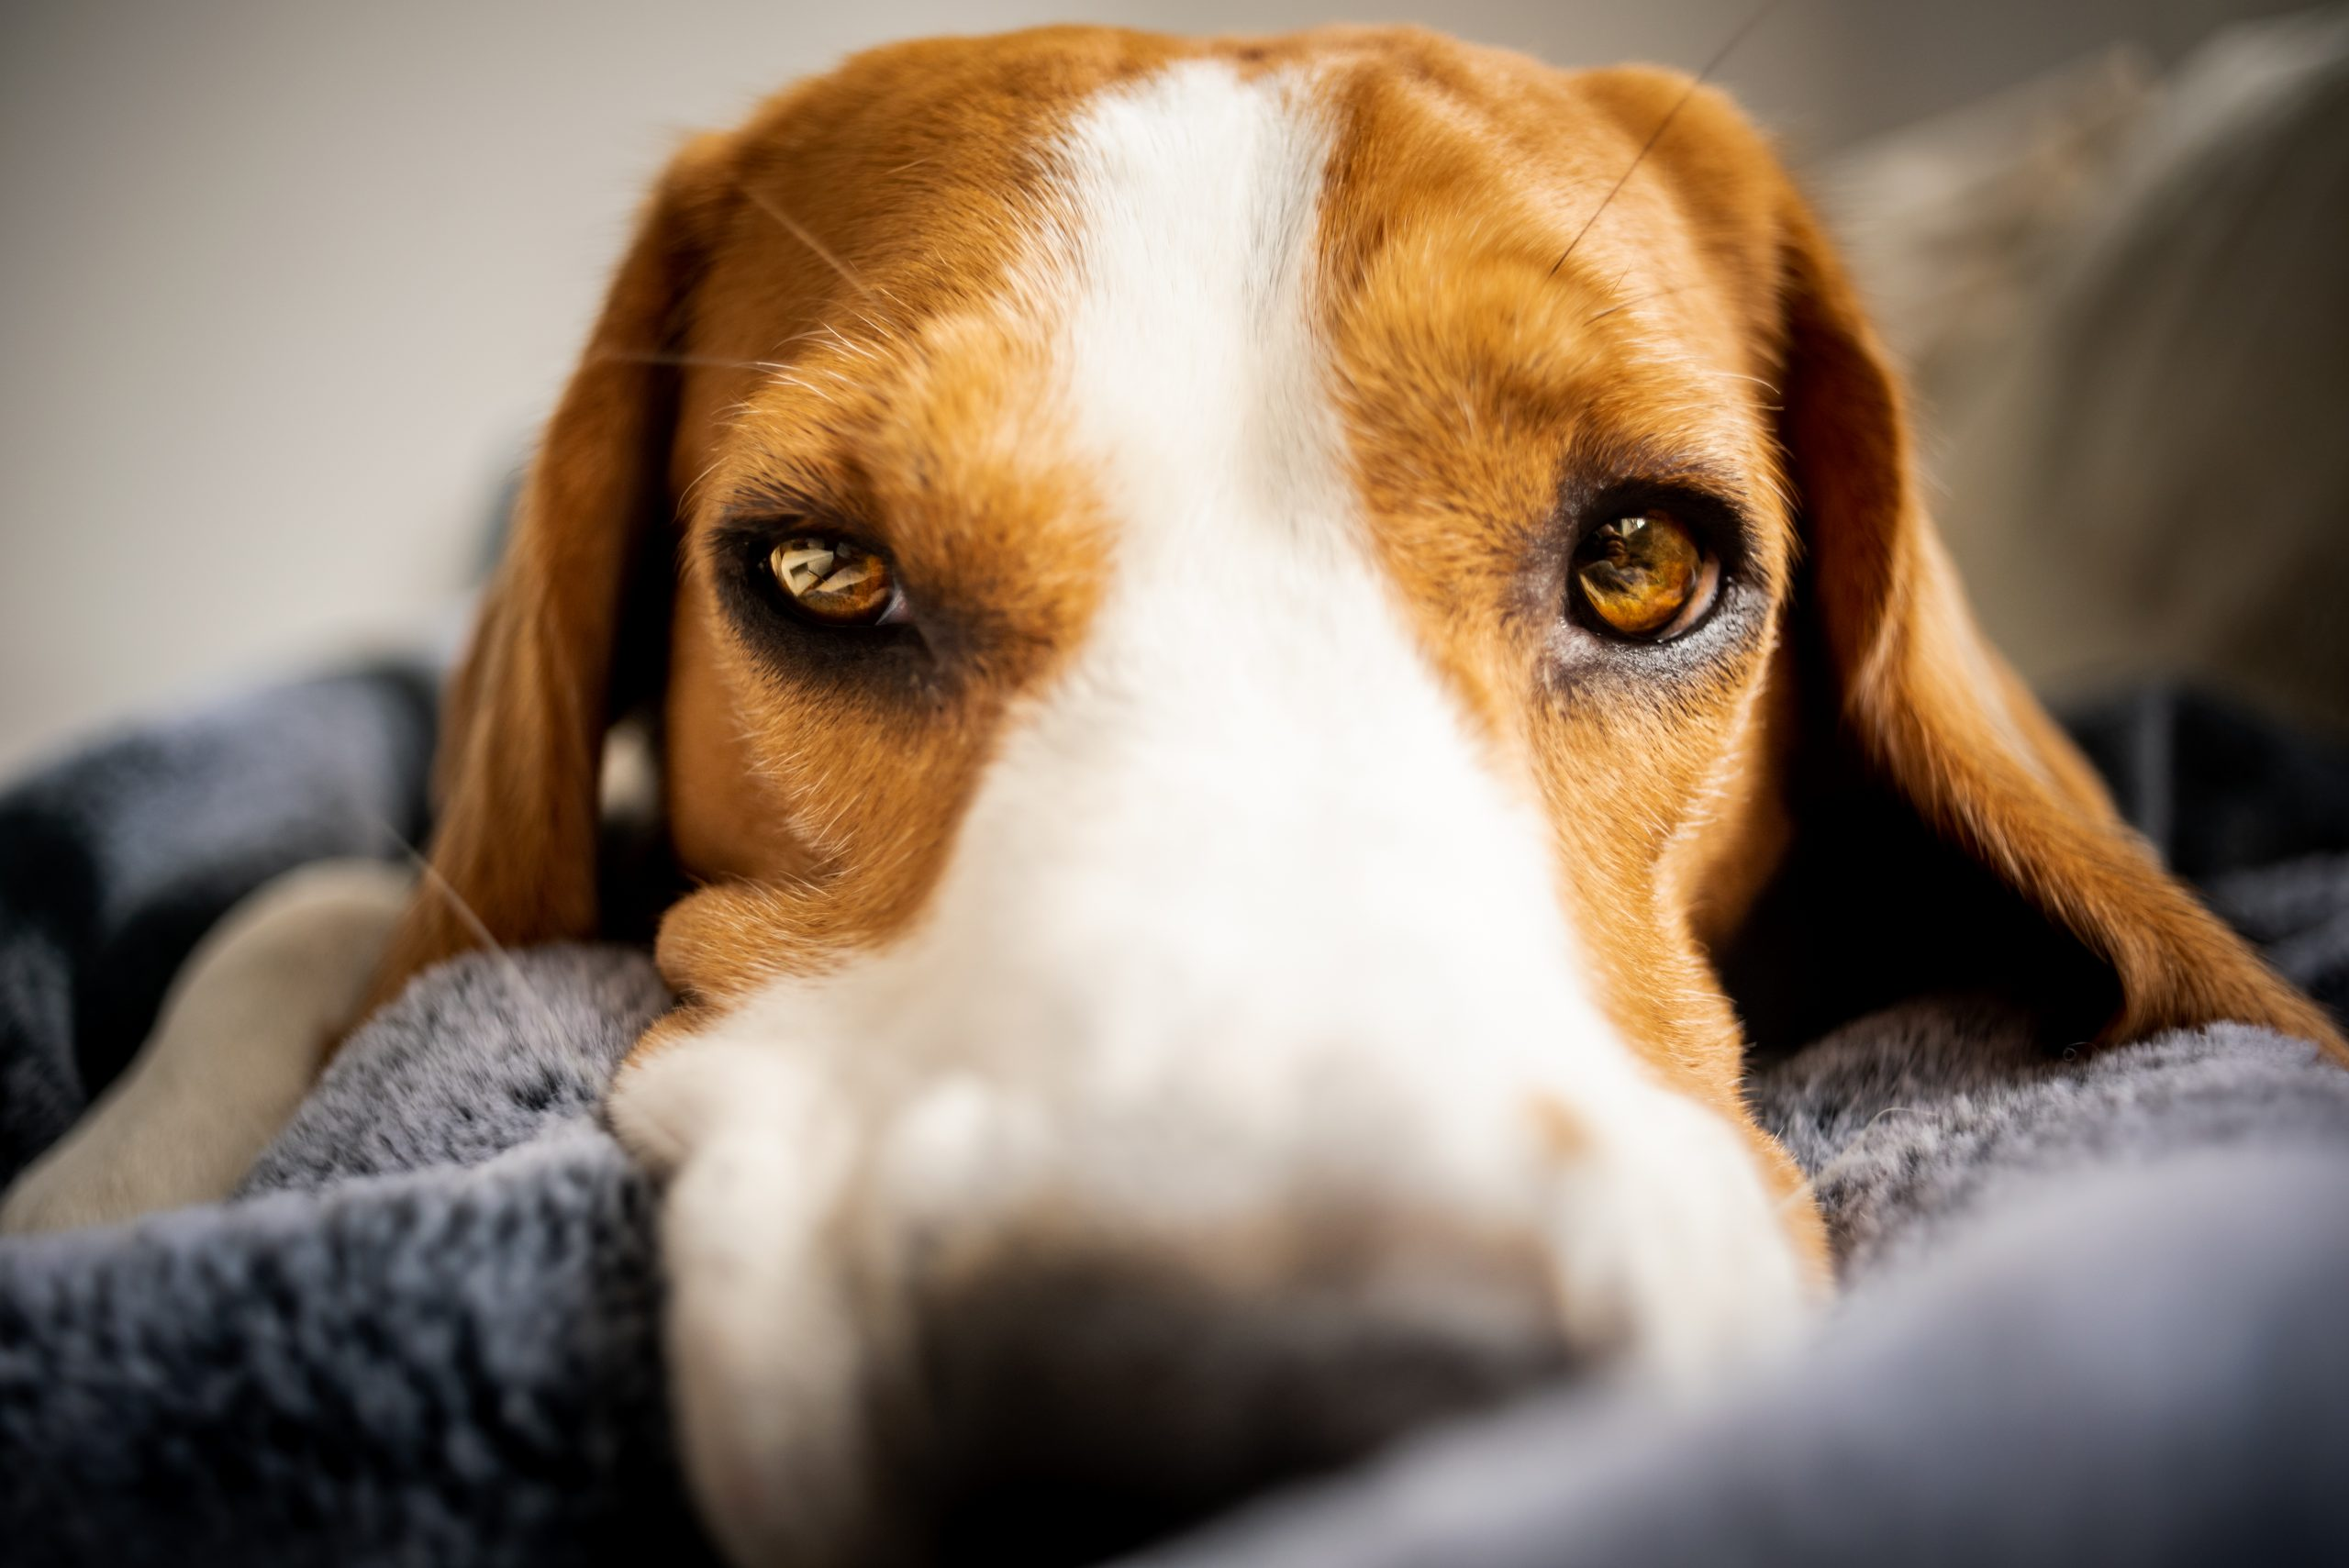 Cancer In Dogs – The Signs And Symptoms You Should Know